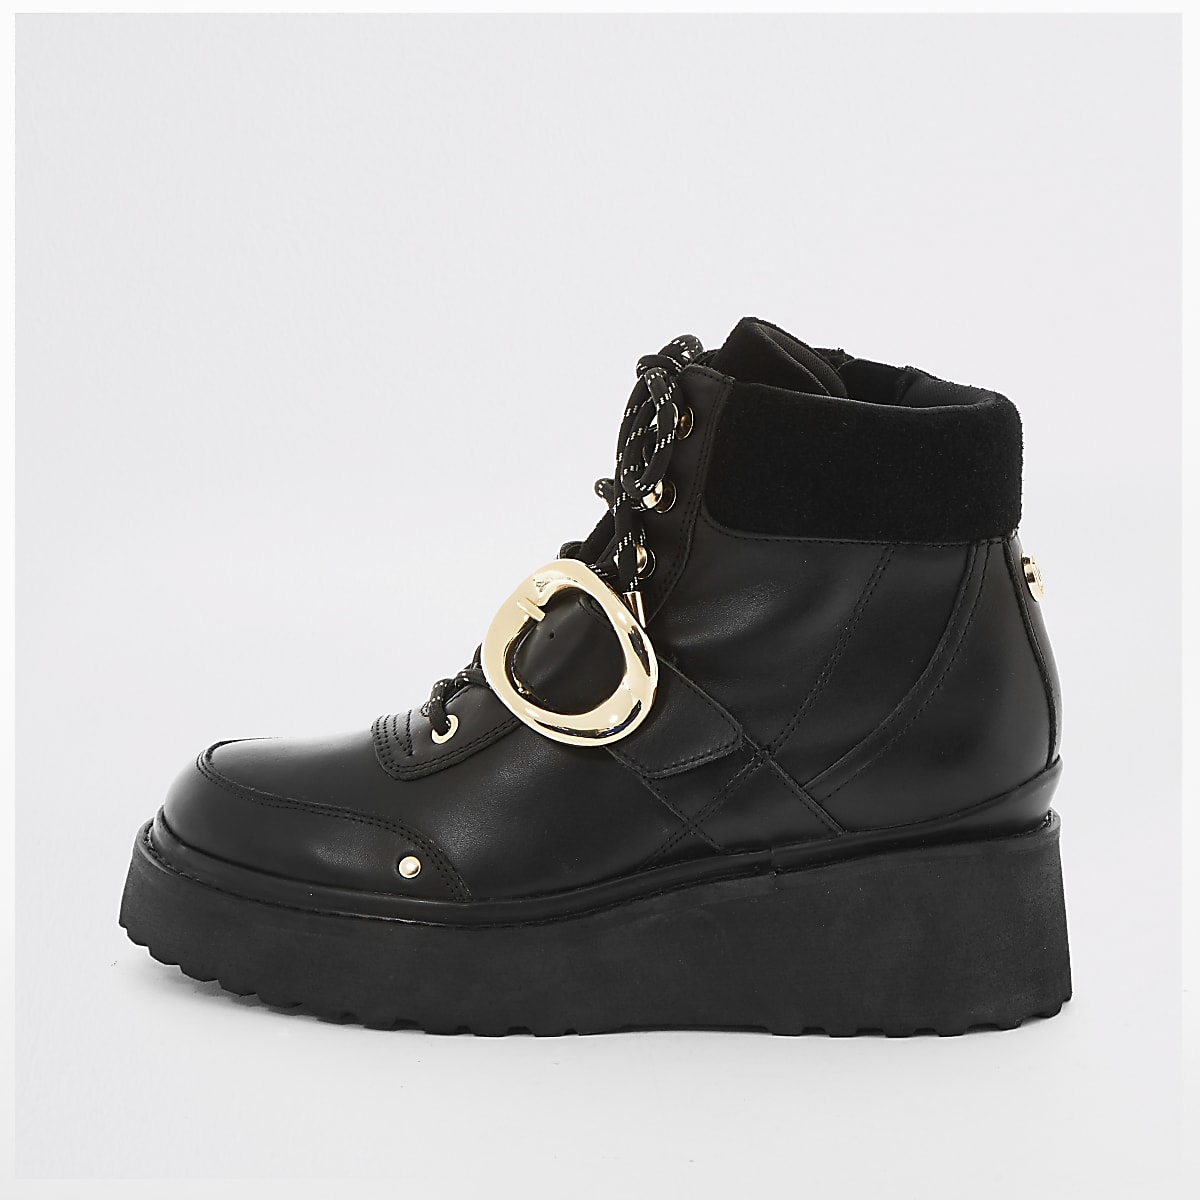 Black leather studded flatform hiking boots